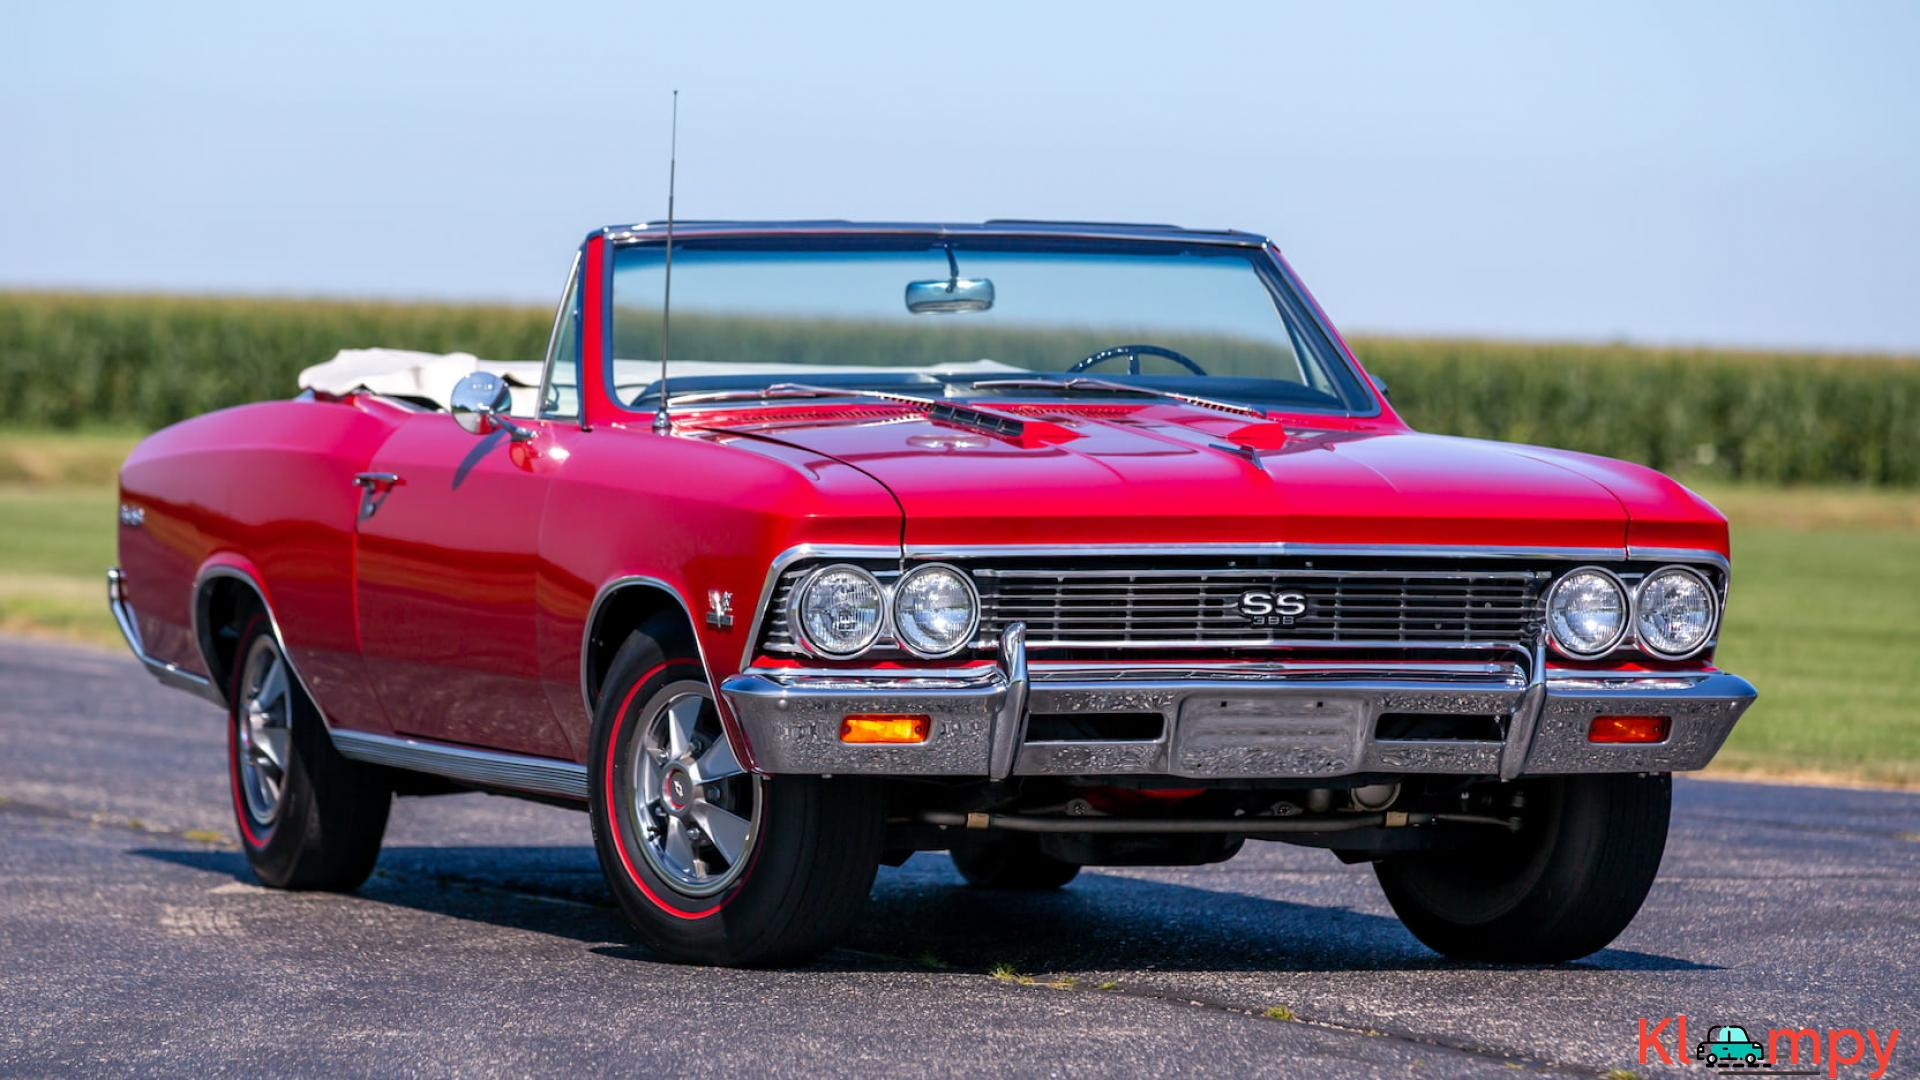 1966 Chevrolet Chevelle SS Convertible - 1/15